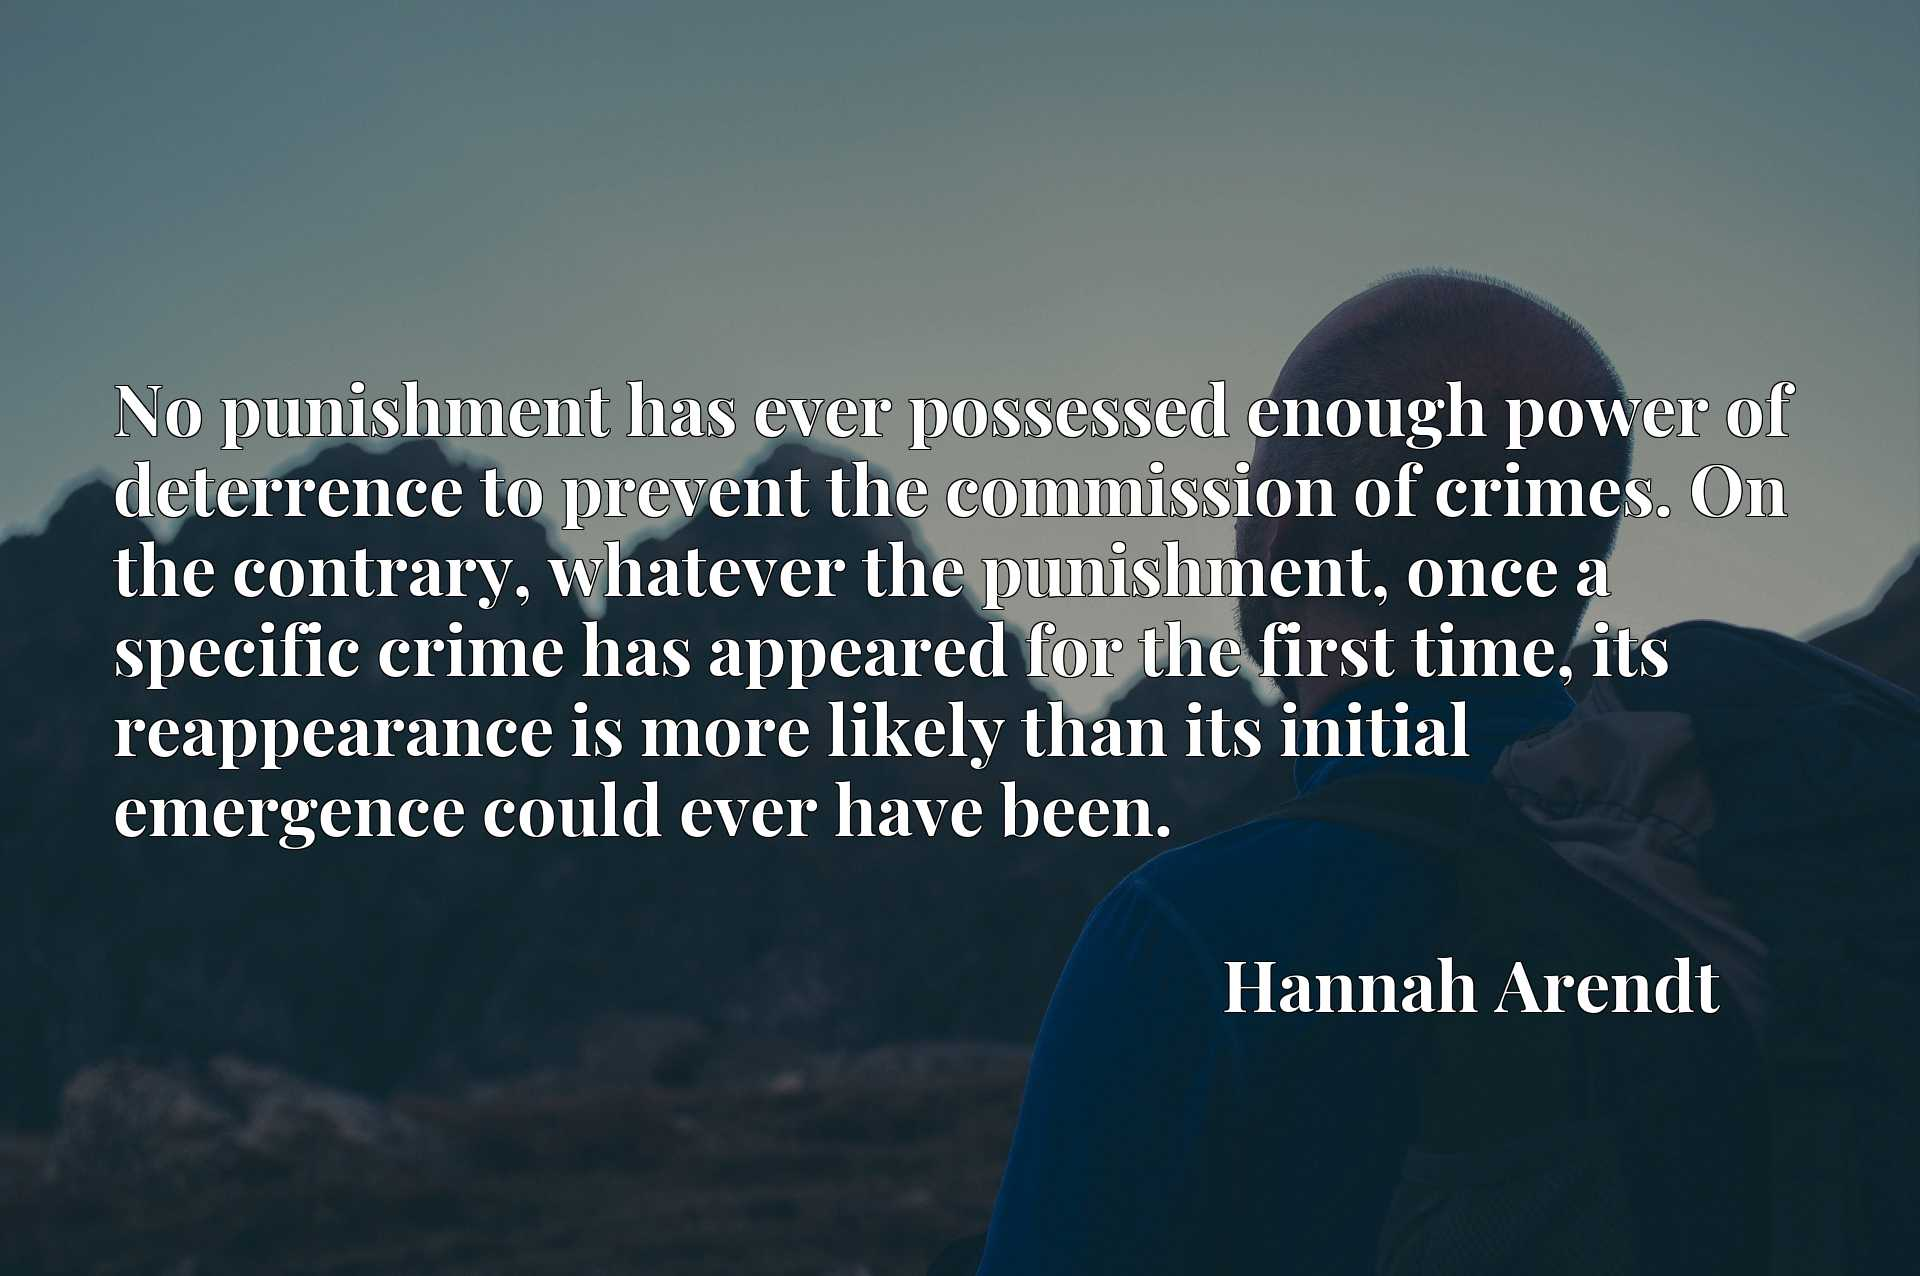 No punishment has ever possessed enough power of deterrence to prevent the commission of crimes. On the contrary, whatever the punishment, once a specific crime has appeared for the first time, its reappearance is more likely than its initial emergence could ever have been.